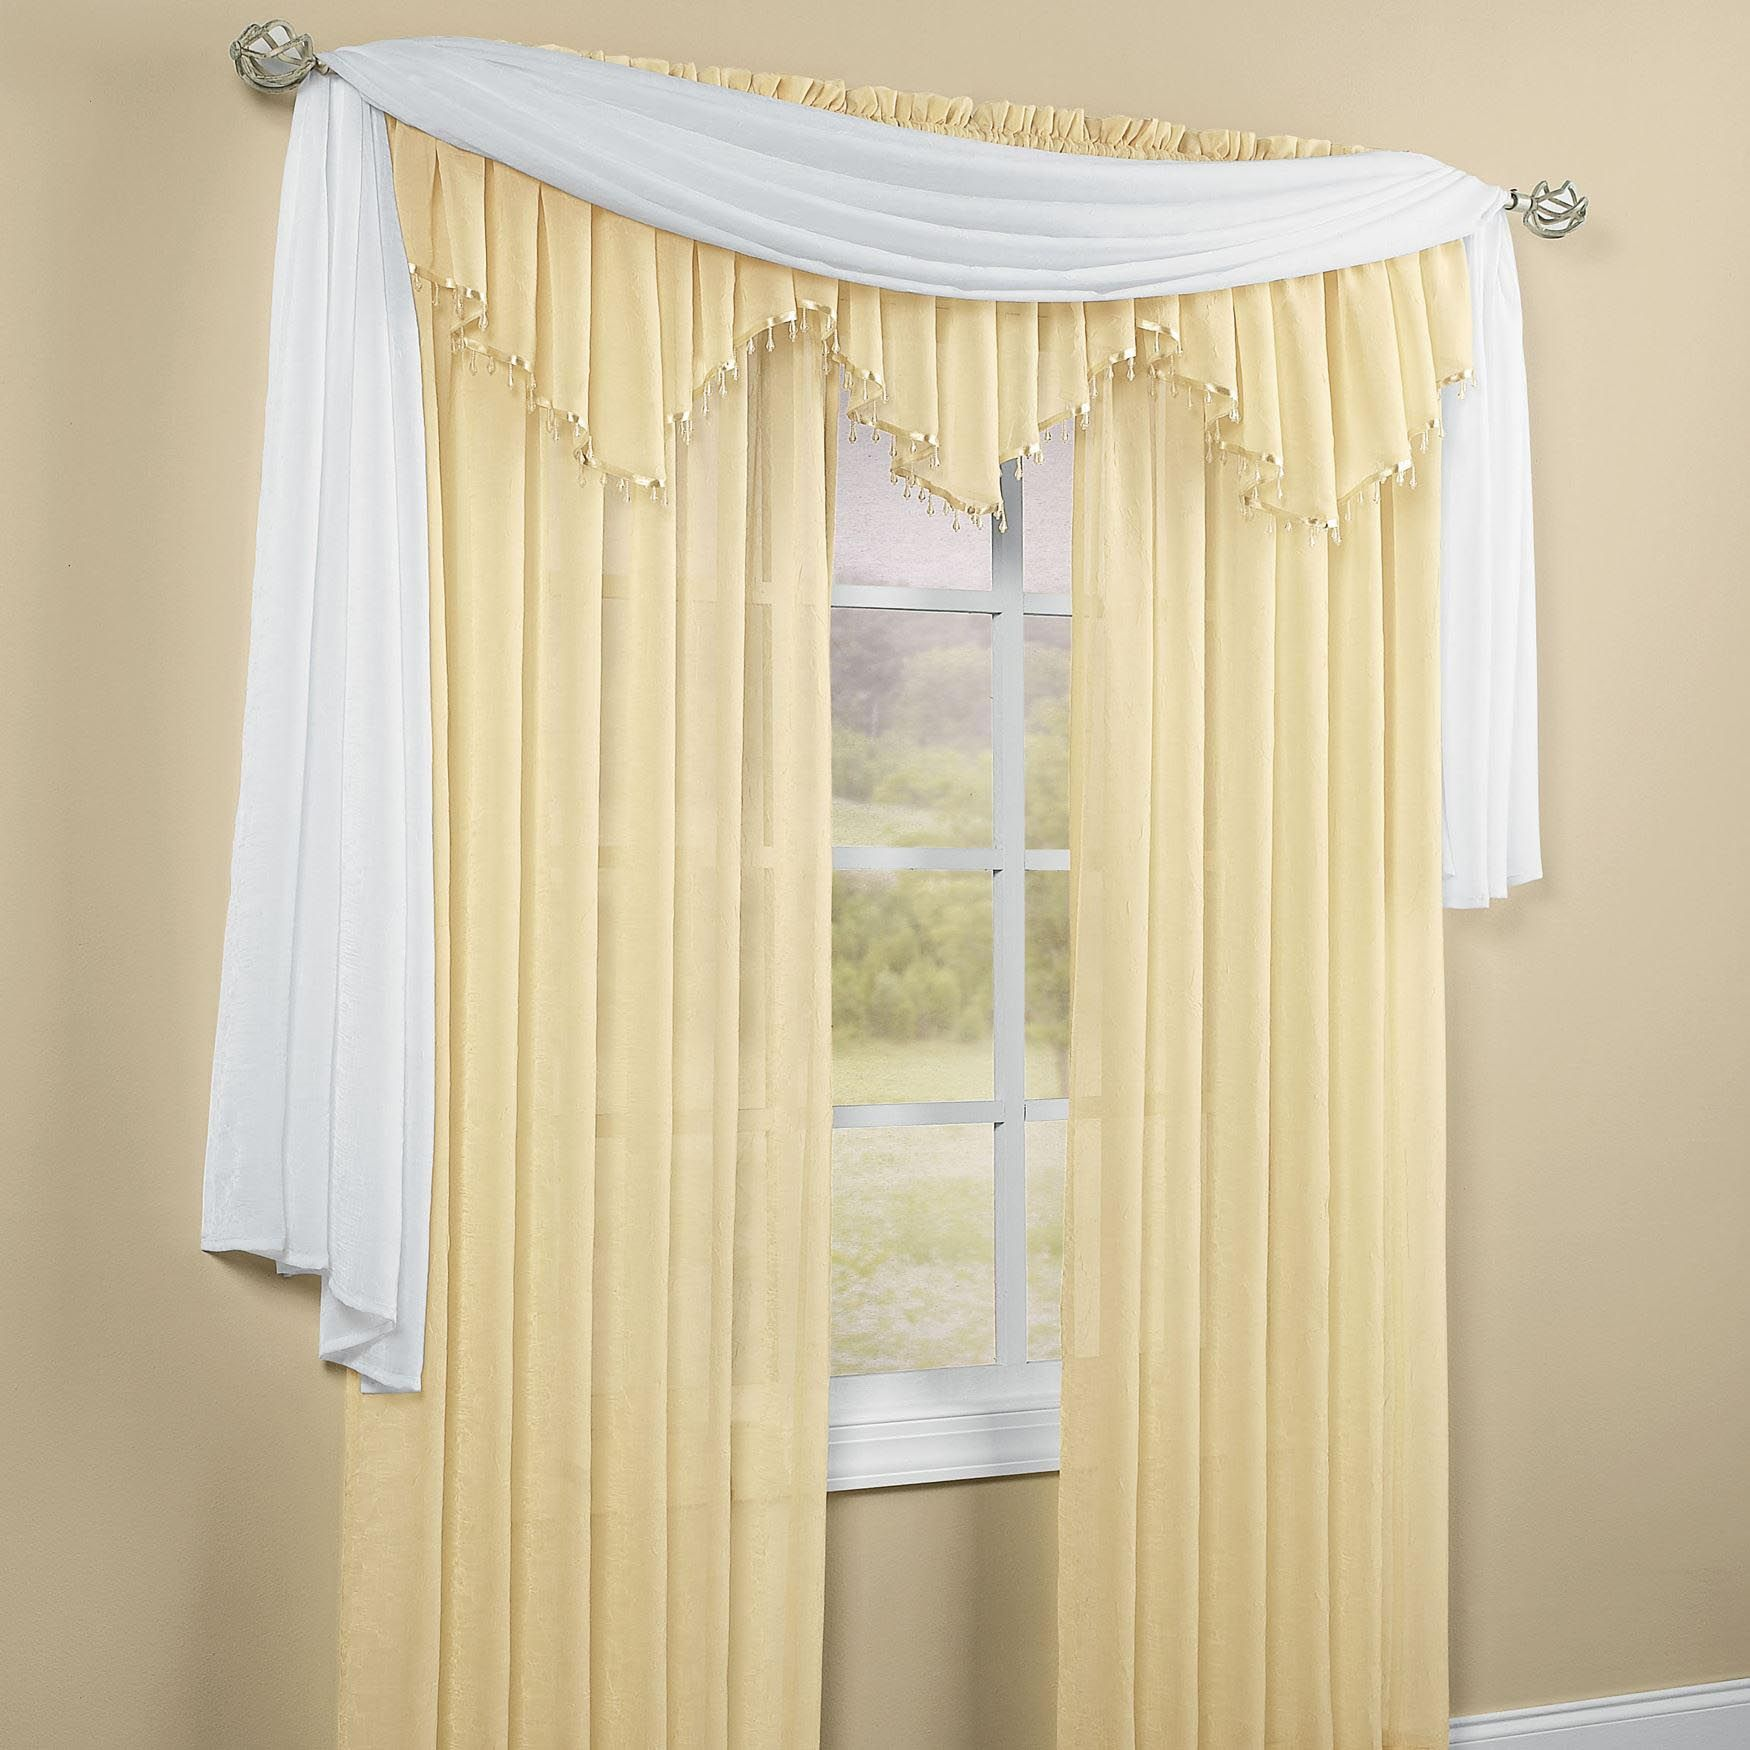 Sheer Scarf Valance Window Treatments Part - 24: Window · Crushed Voile Sheer Scarf Valance